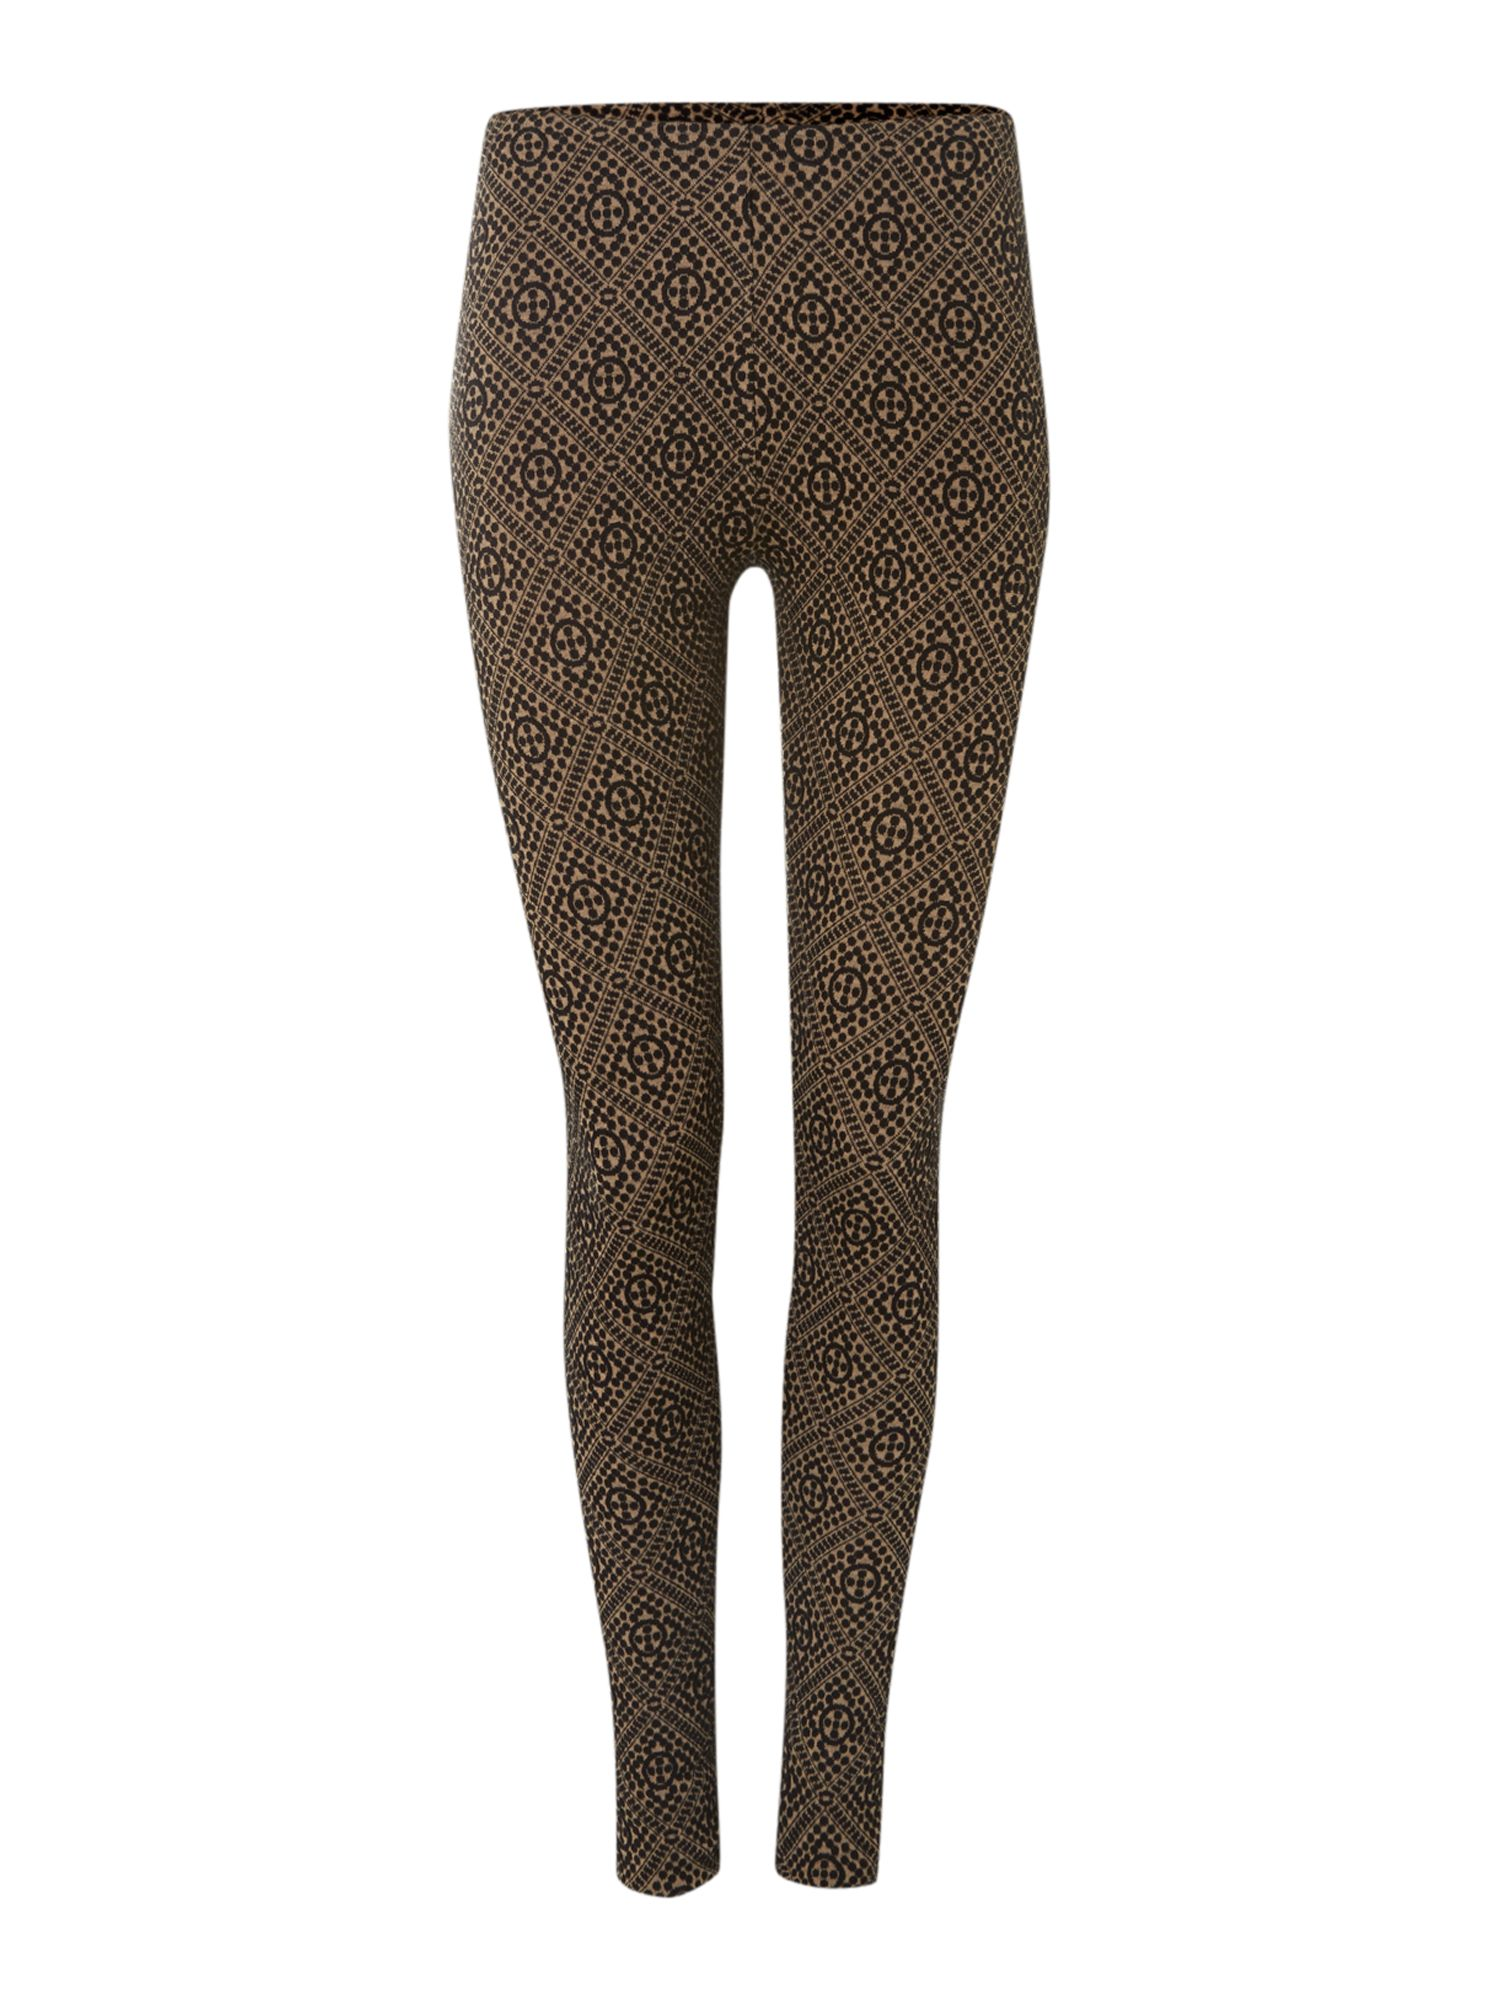 Rosati leggings